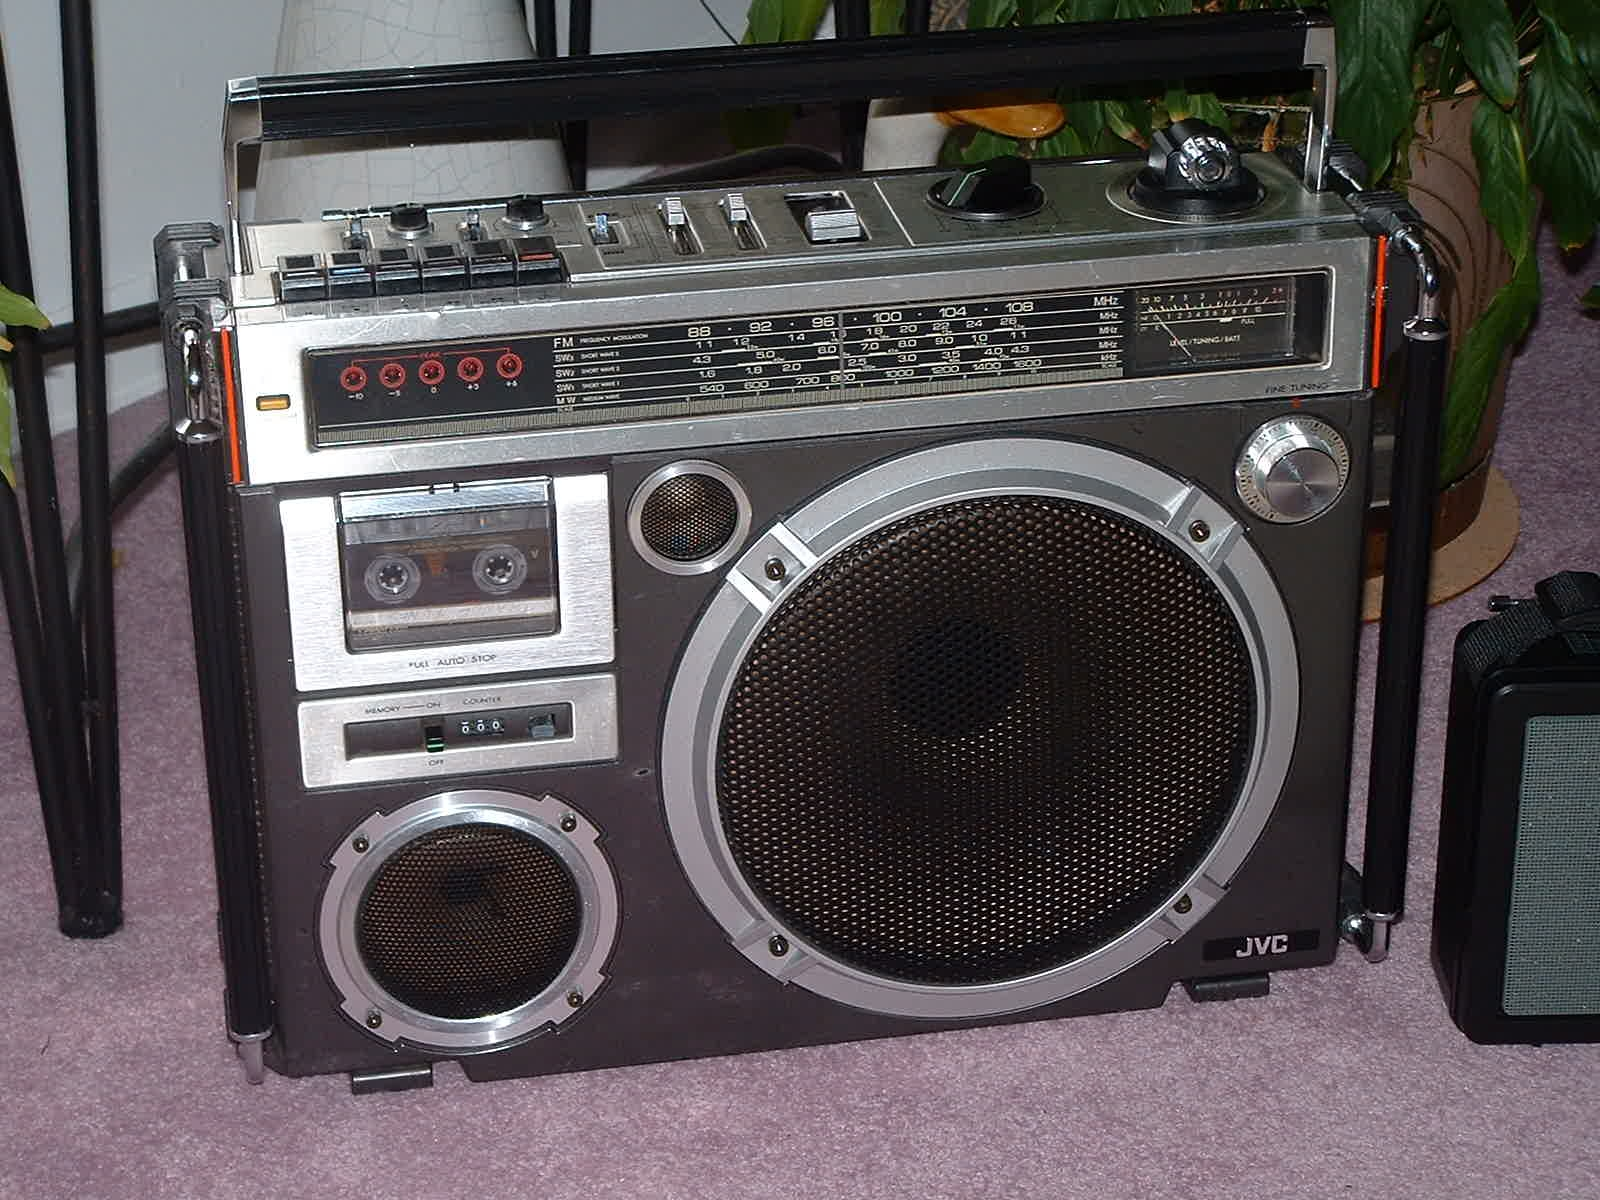 Old Fashioned Stereo With Turntable also Cdj 2000 likewise Ethan Allen Furniture Gallery Online additionally Pal Bluetooth Am Fm Portable Radio as well Best All In One Turntables And Record Players. on old fashioned portable am radio